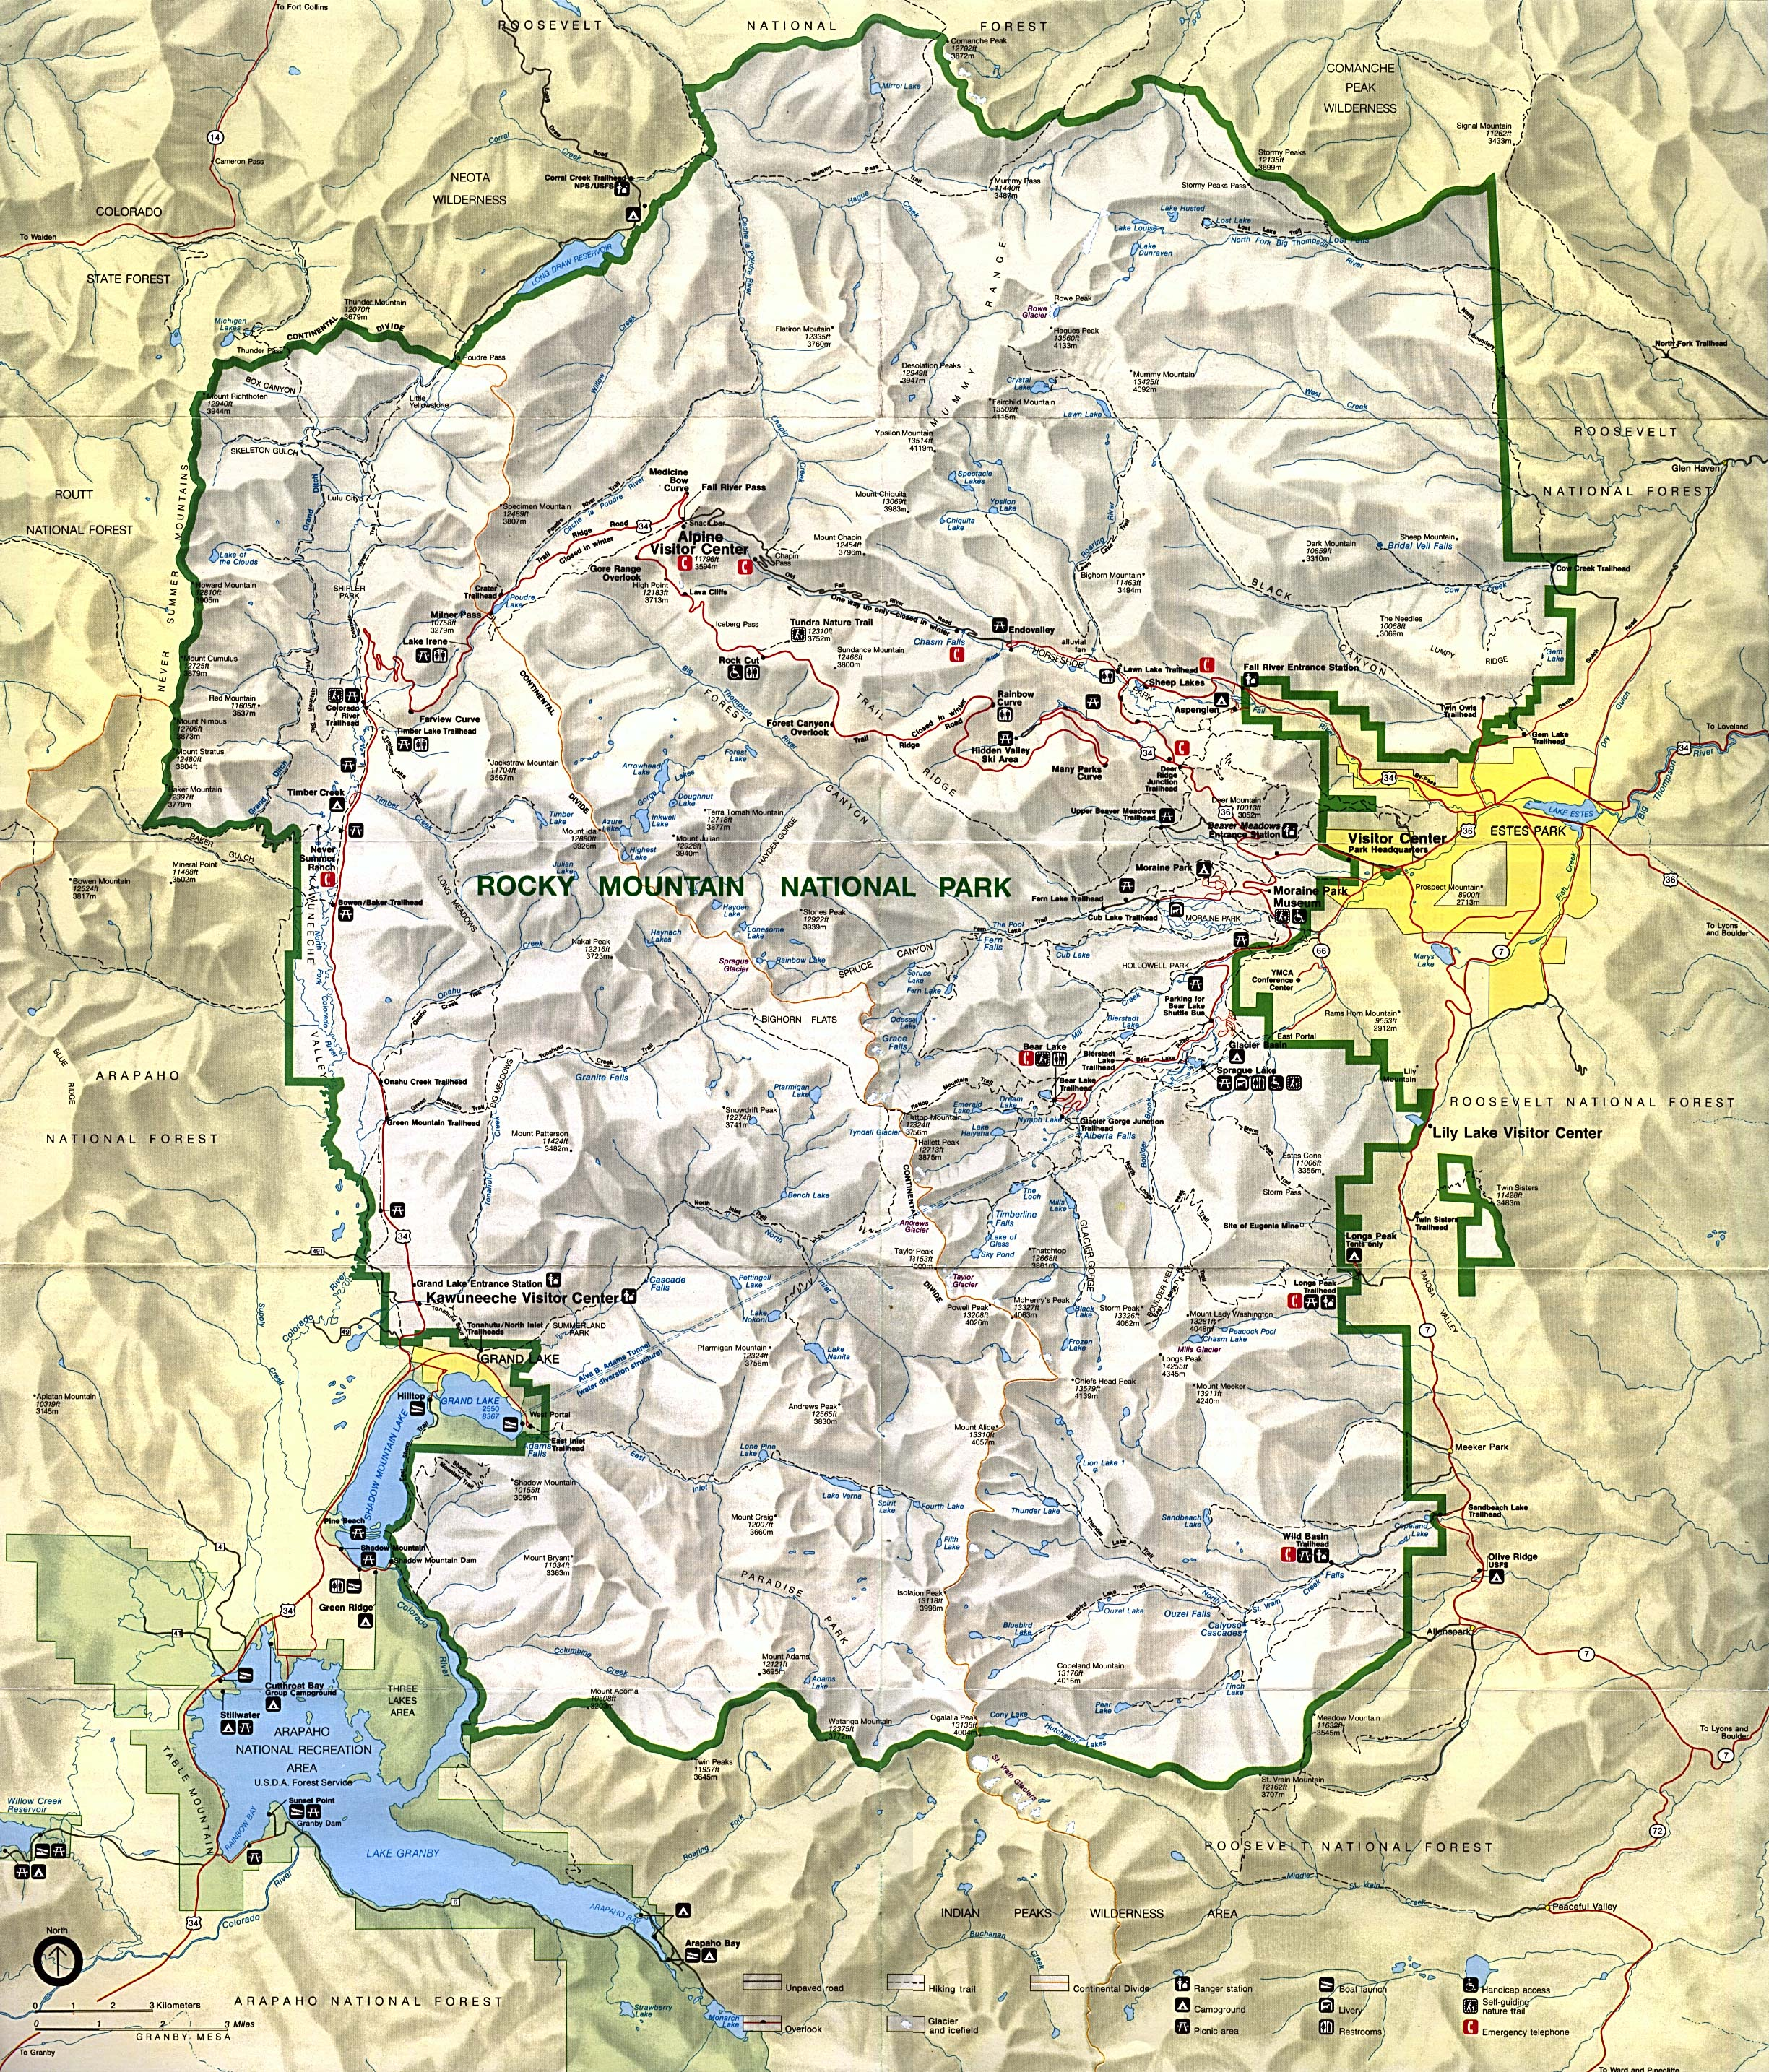 Map Of State Park Rockies Colorado on map of golden state warriors, map of durango to silverton, map of colorado arizona, map of colorado front range, map of denver art museum, map of texas rangers, map of chicago white sox, map of colorado water, map of colorado school of mines, map of colorado wyoming, map of colorado rivers and creeks, map of colorado scenic byways, map of colorado denver, map of colorado south, map of colorado 14ers, map of colorado boulder, map of central city colorado, map of colorado mountains, map of colorado durango, map of anaheim angels,